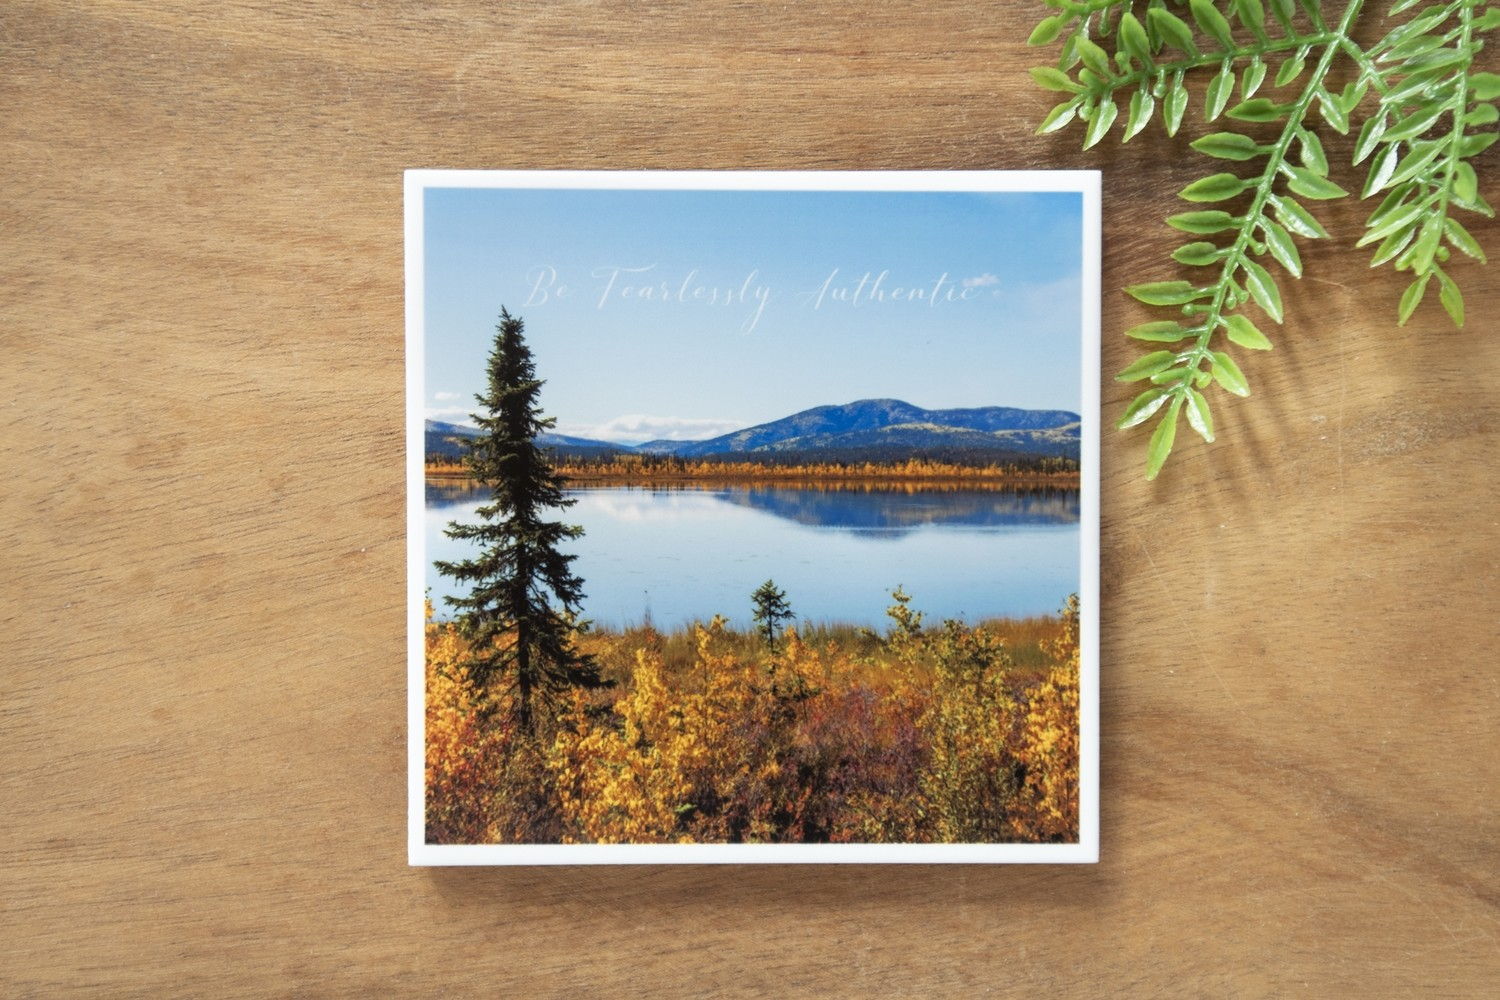 Be Fearlessly Authentic-Nature Photo Coaster